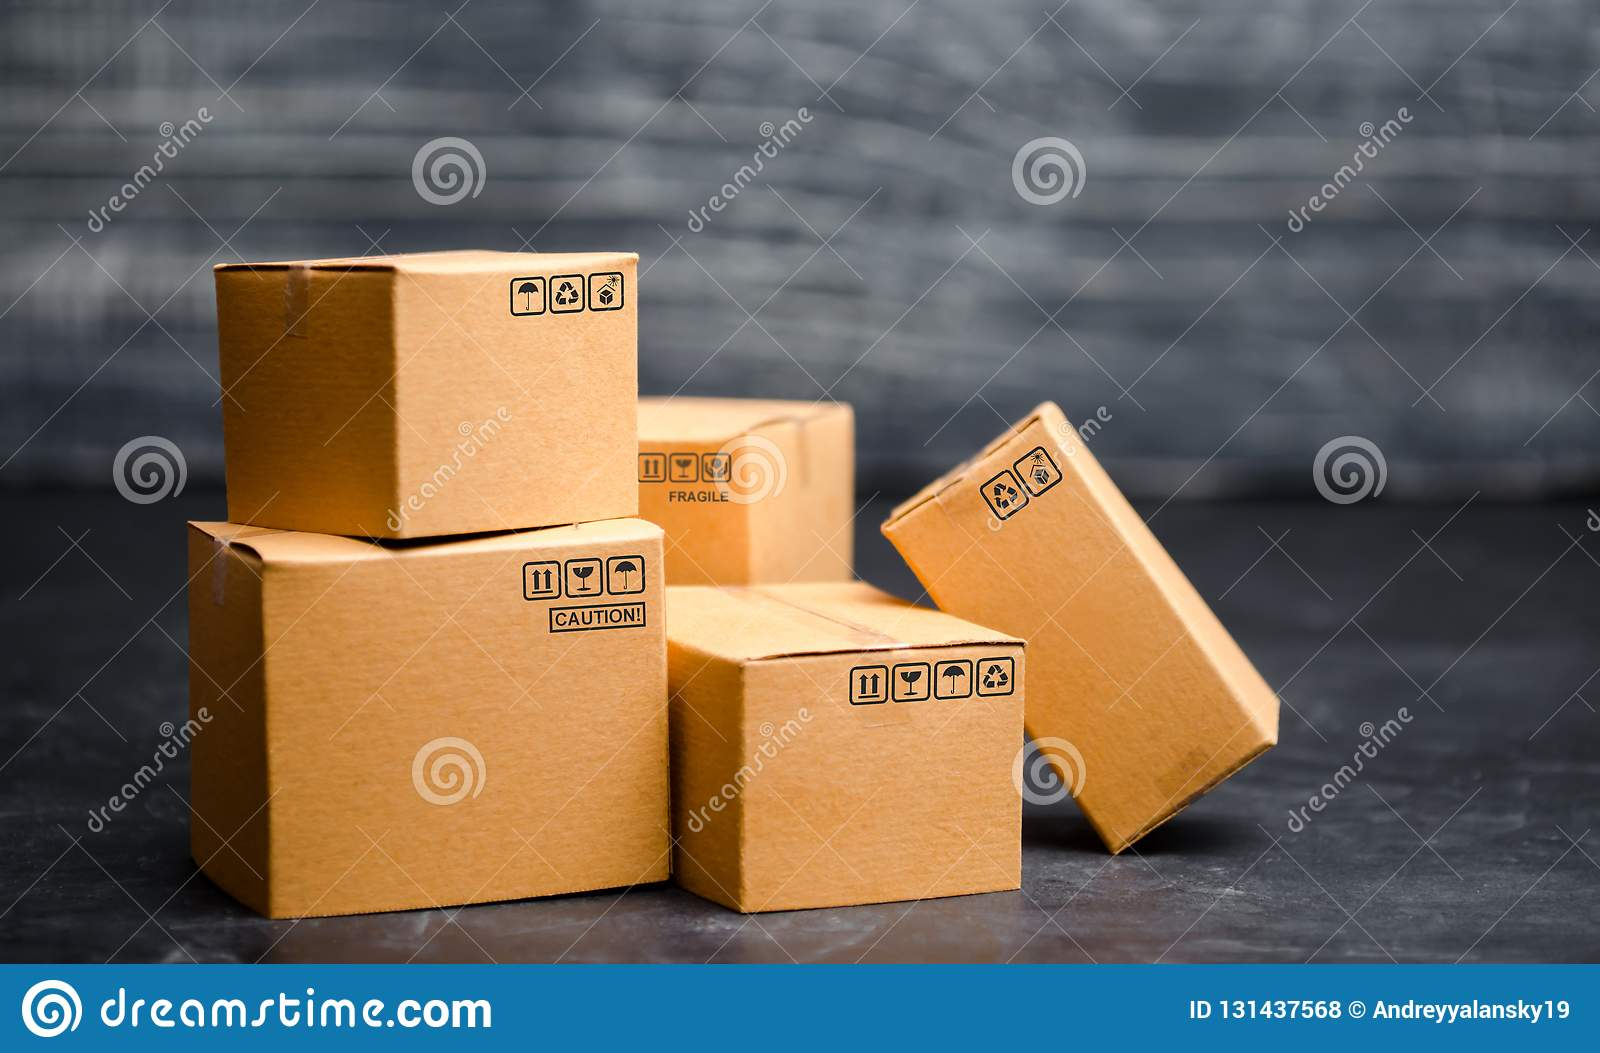 Cardboard boxes. The concept of packing goods, sending orders to customers. Warehouse of finished products and equipment. Moving